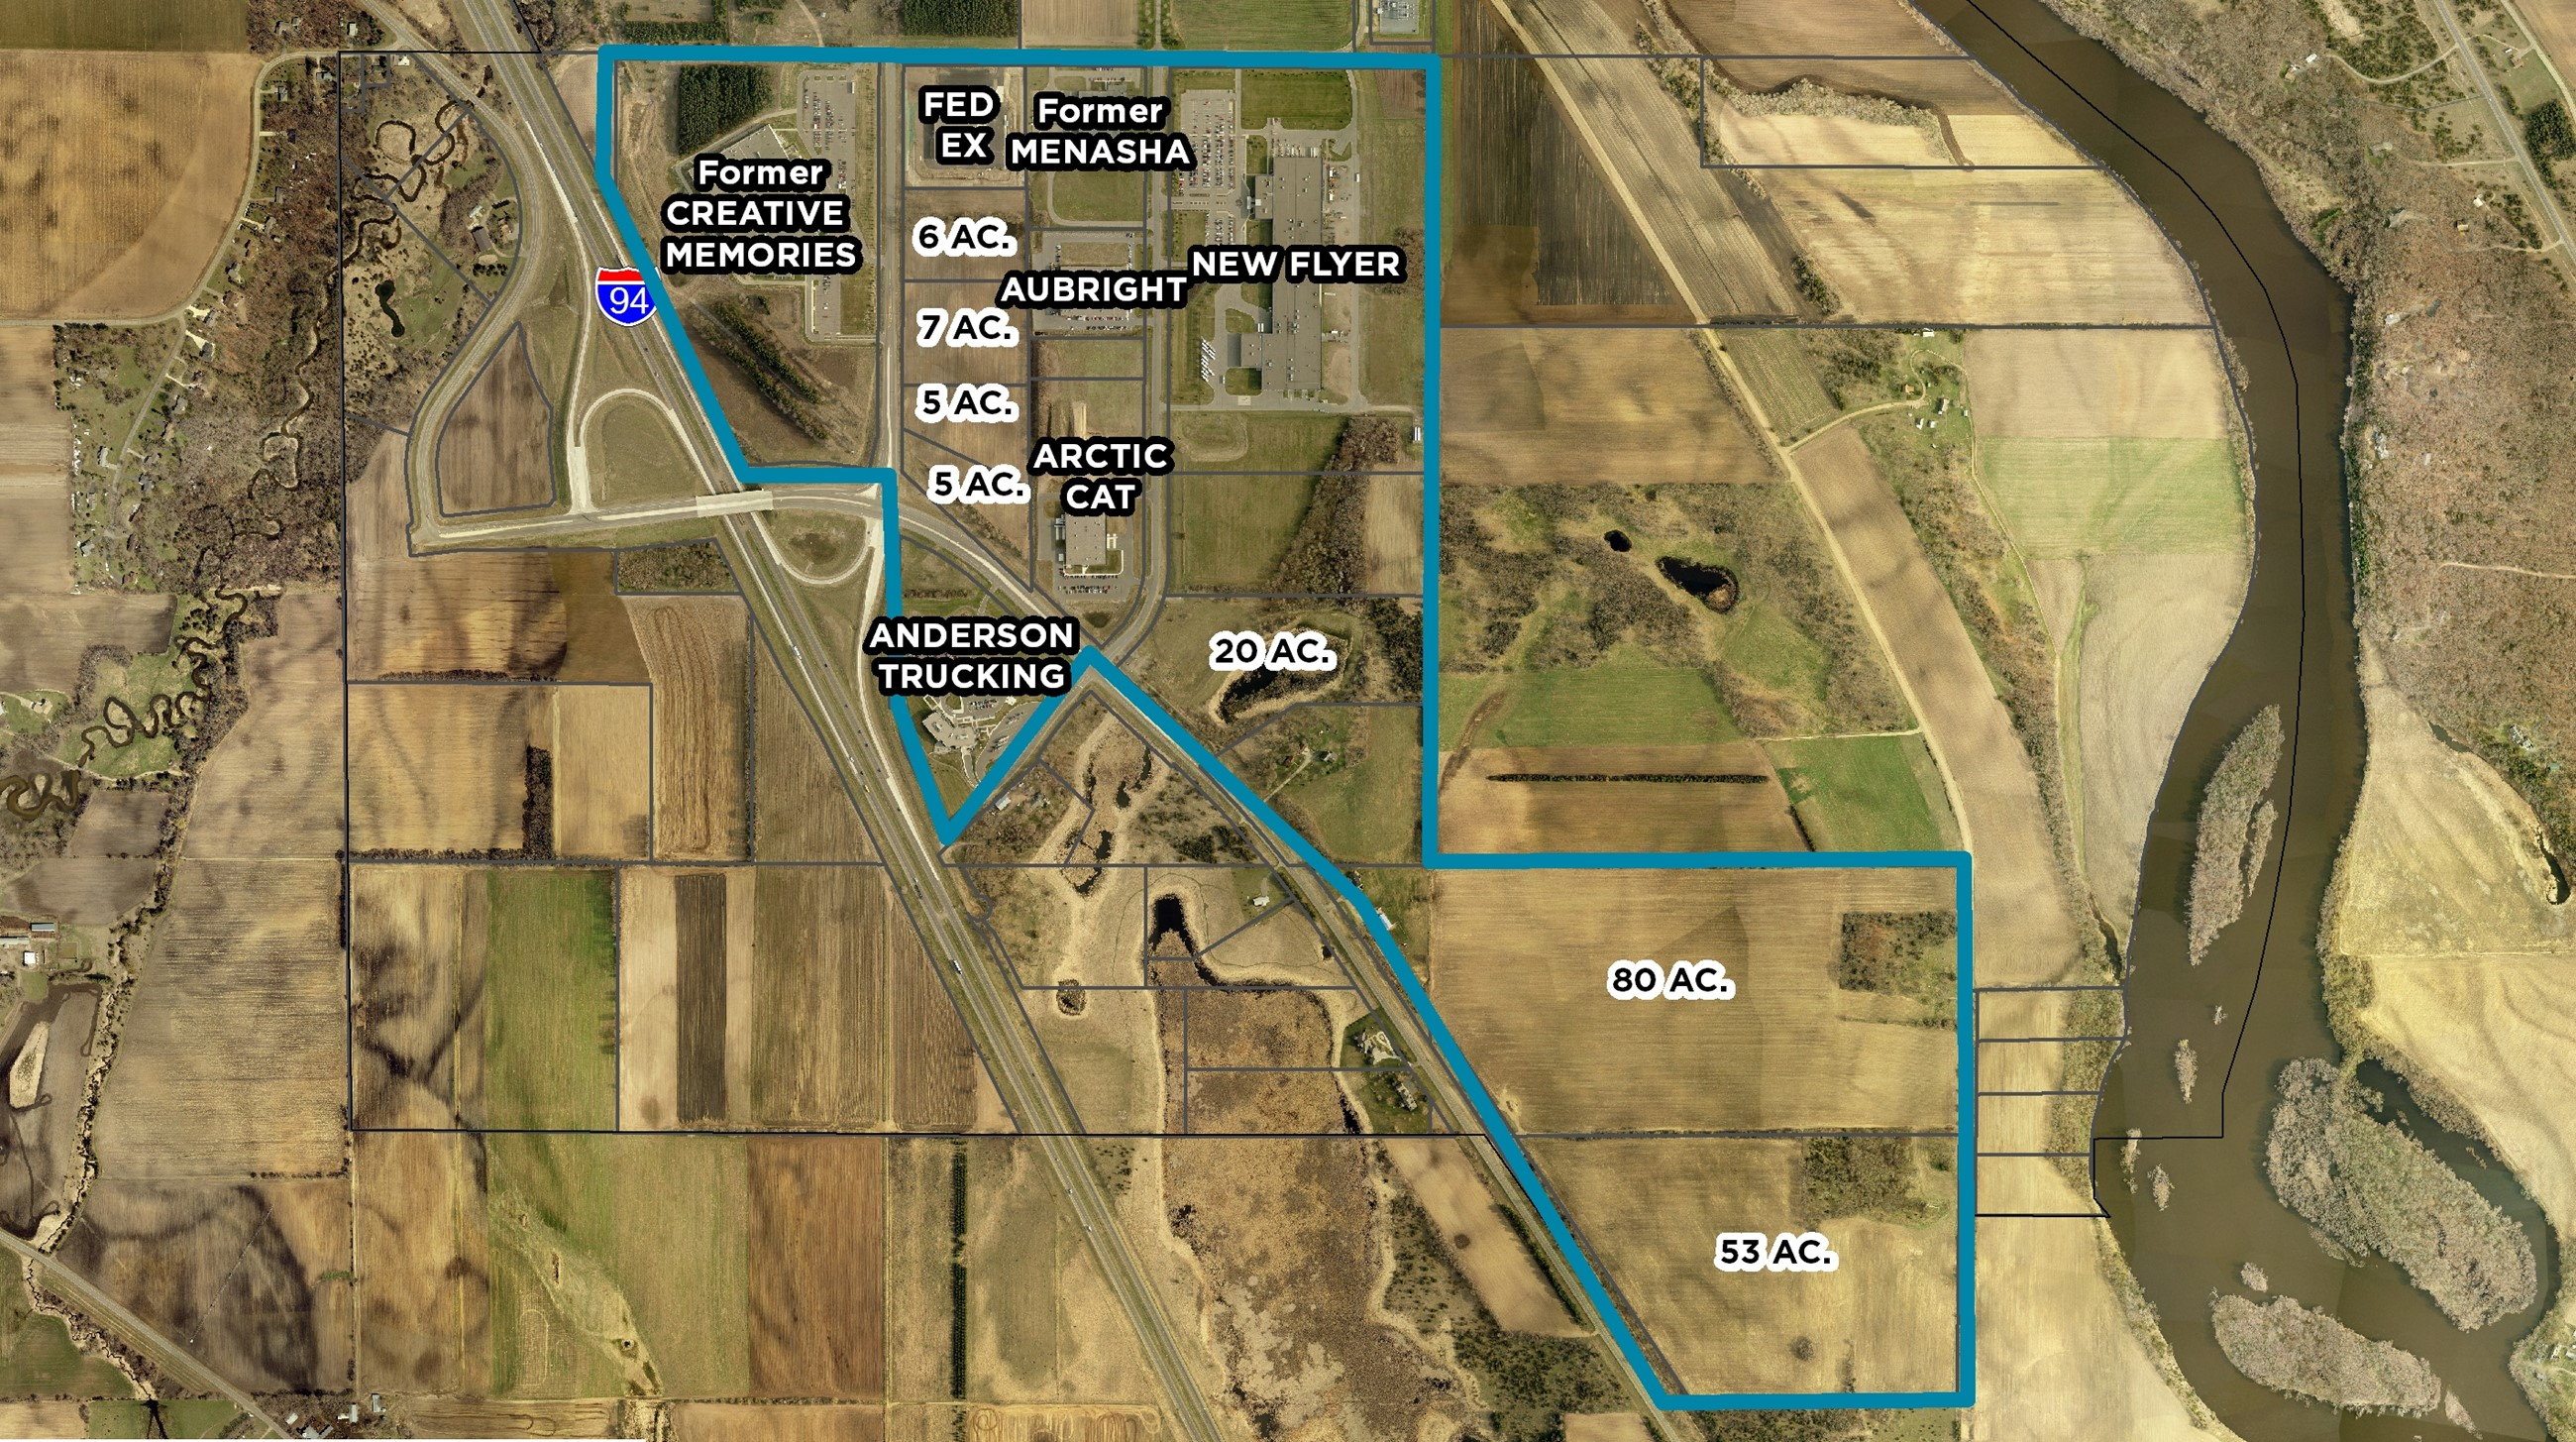 2014 5 28 i94 business park basemap for sell sheet 2